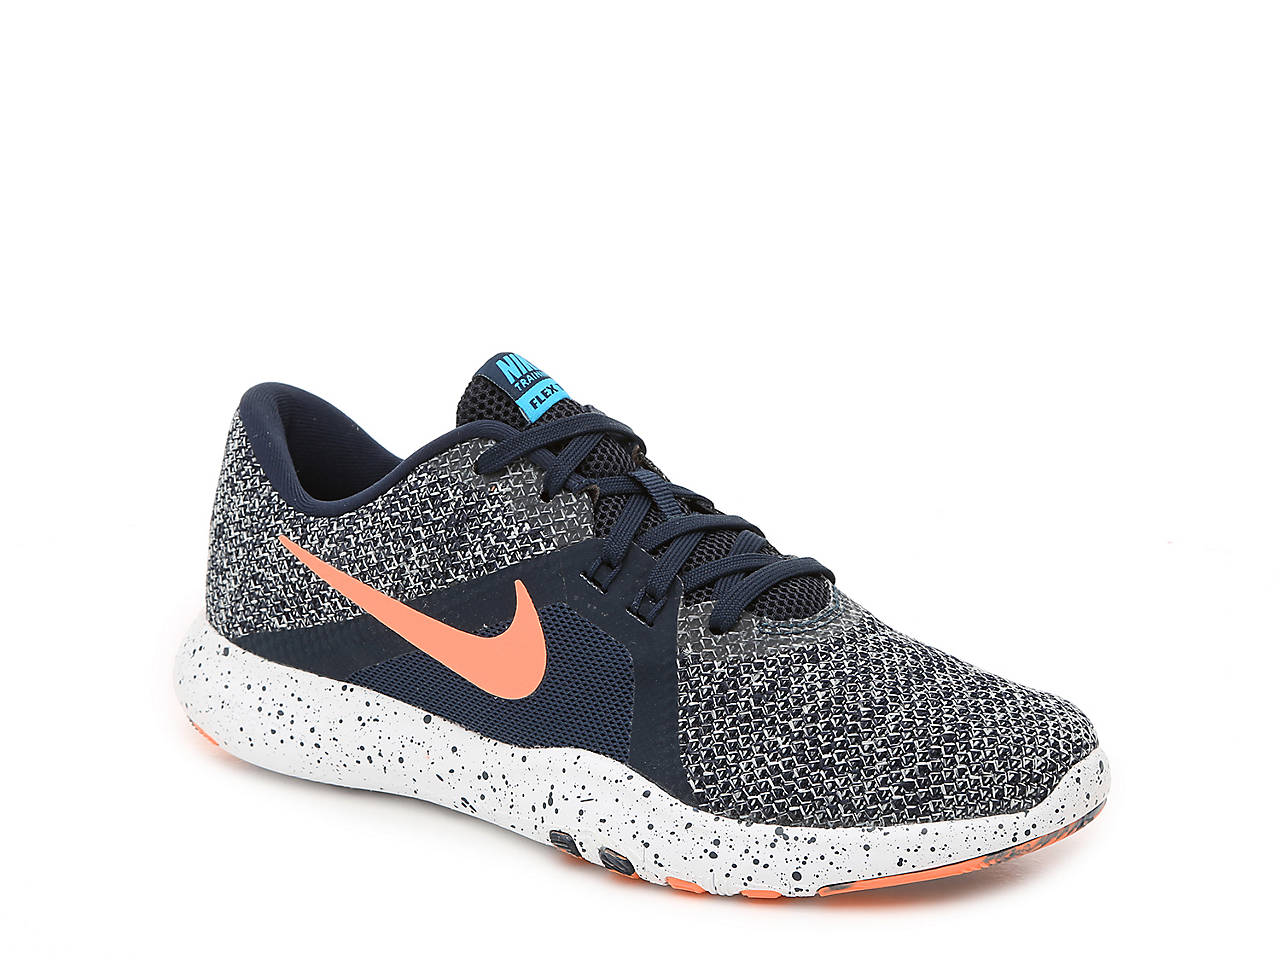 Nike Flex Trainer 8 Lightweight Training Shoe - Women s Women s ... 8b4075c2fc